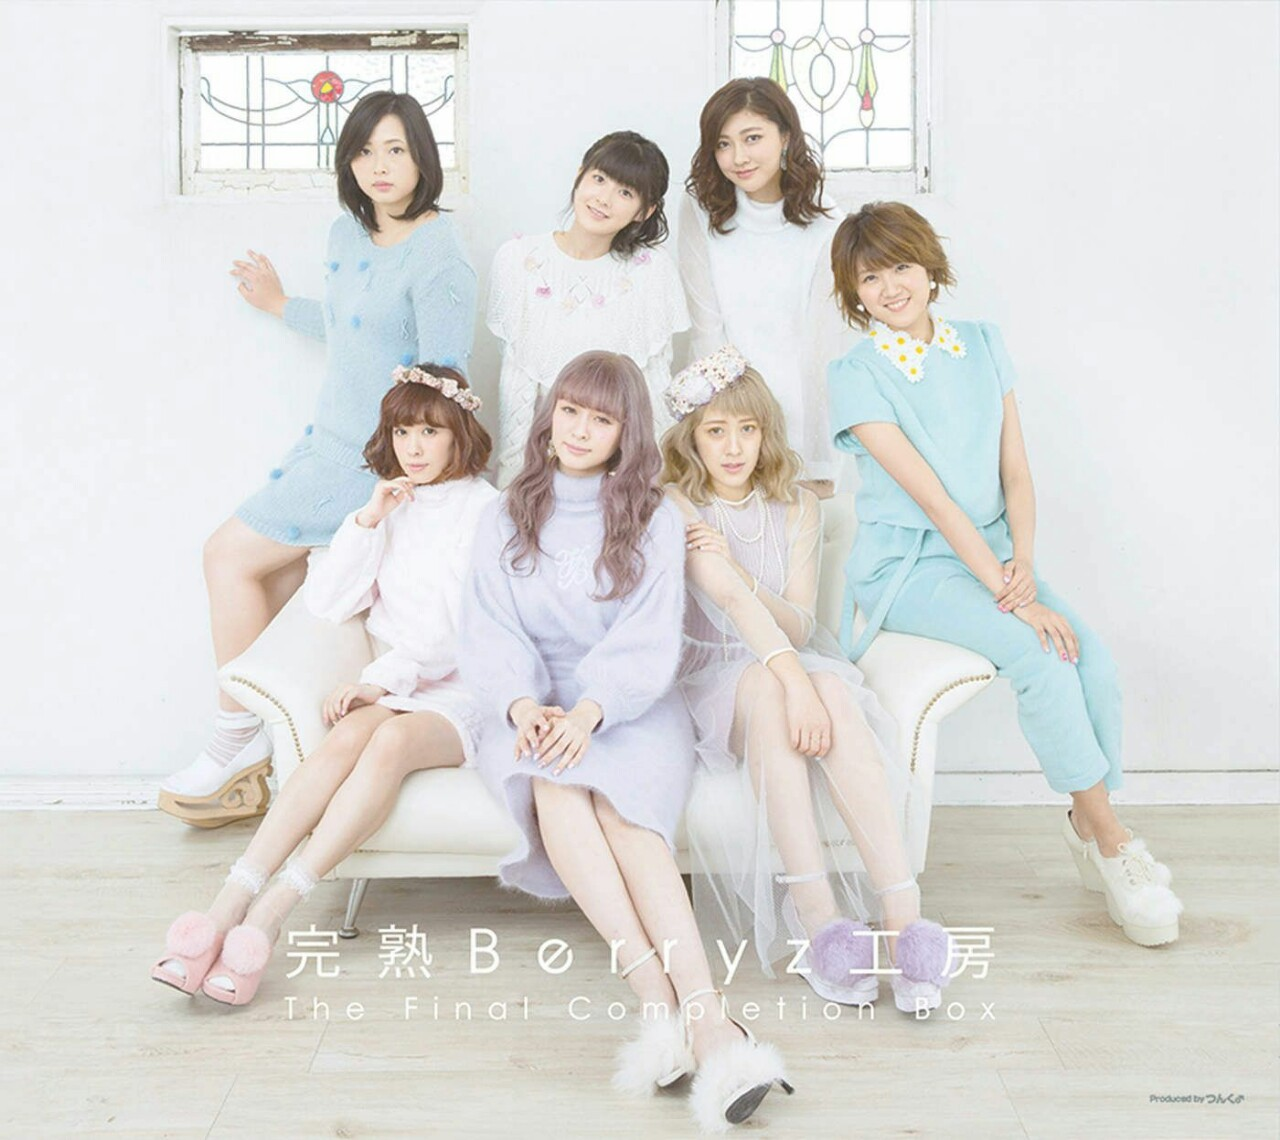 File:Berryz Kobo - The Final Completion Box Reg.jpg